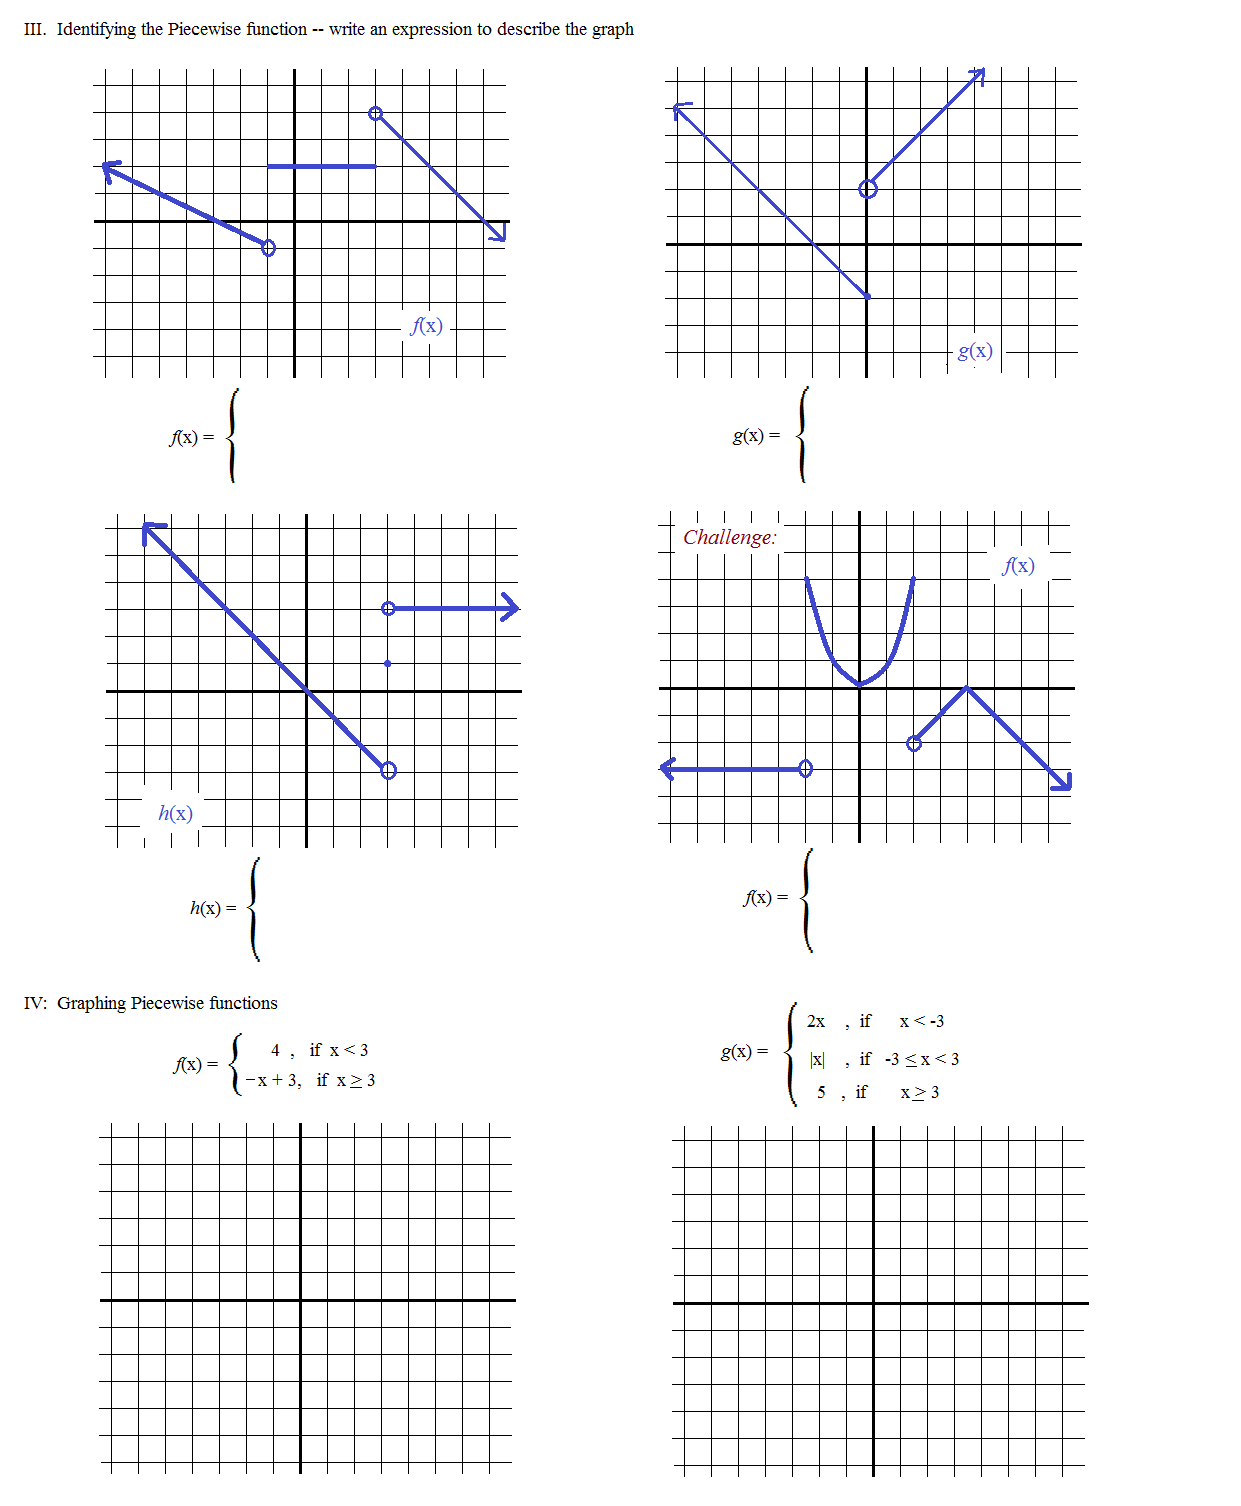 Graphing Piecewise Functions Worksheet Precommunity Printables – Piecewise Functions Worksheet with Answers